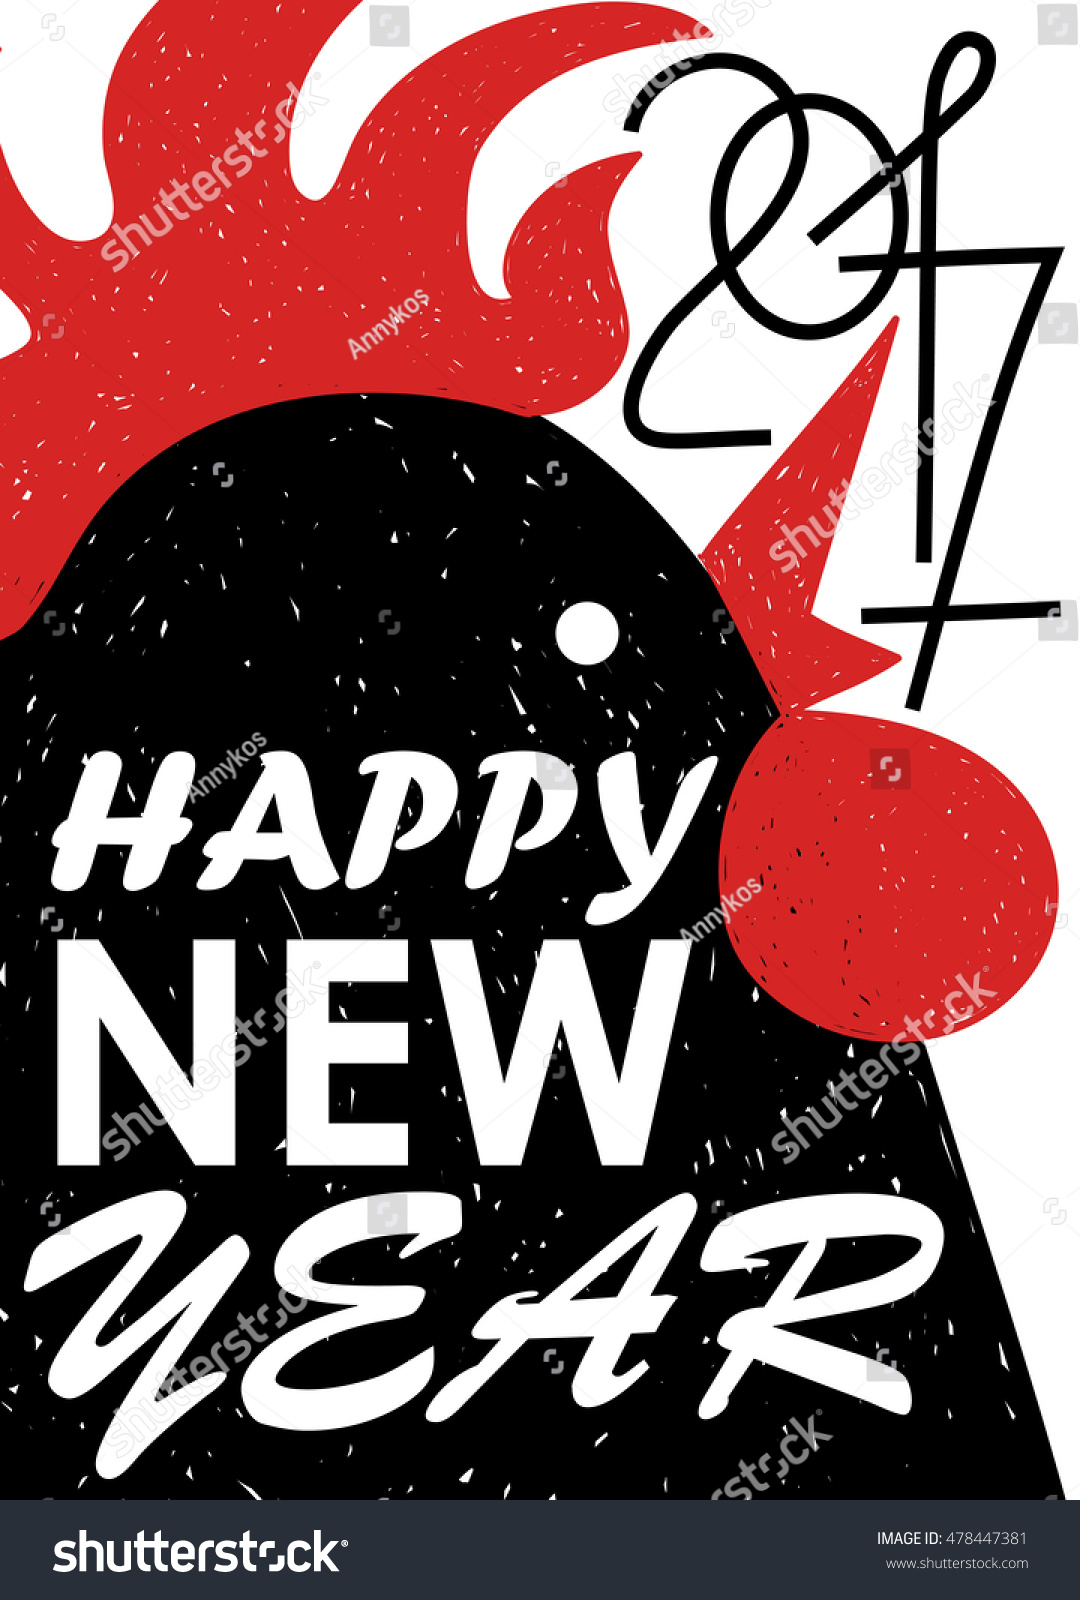 happy new year greeting card typography poster with funny black rooster symbol of the